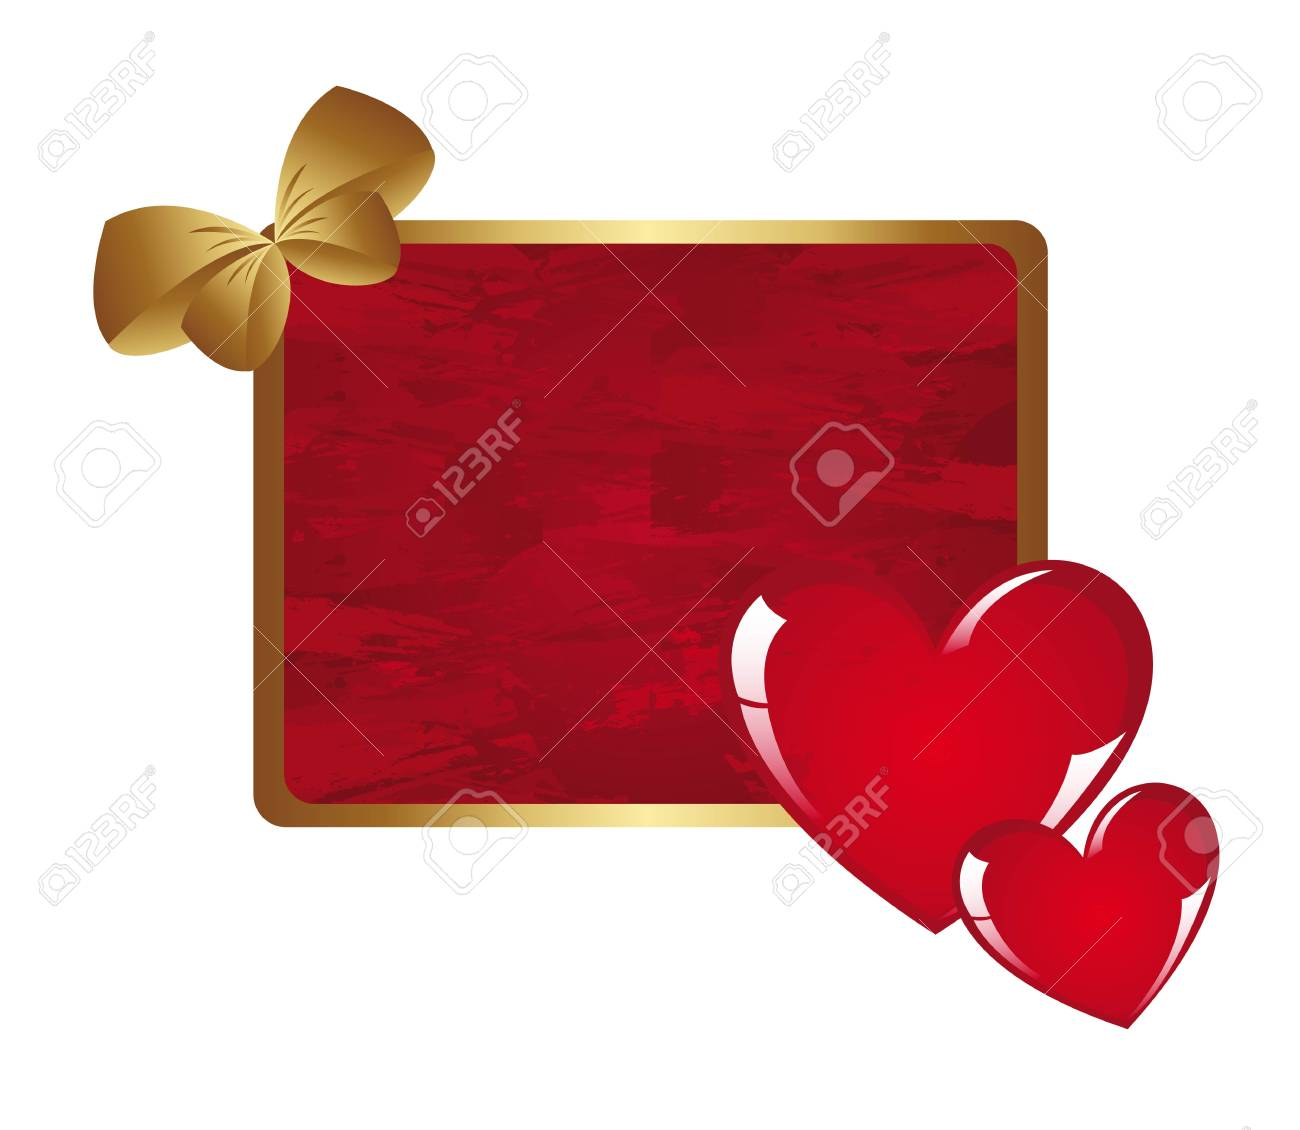 Hearts on red card, space to insert text or design, vector illustration Stock Vector - 12136702